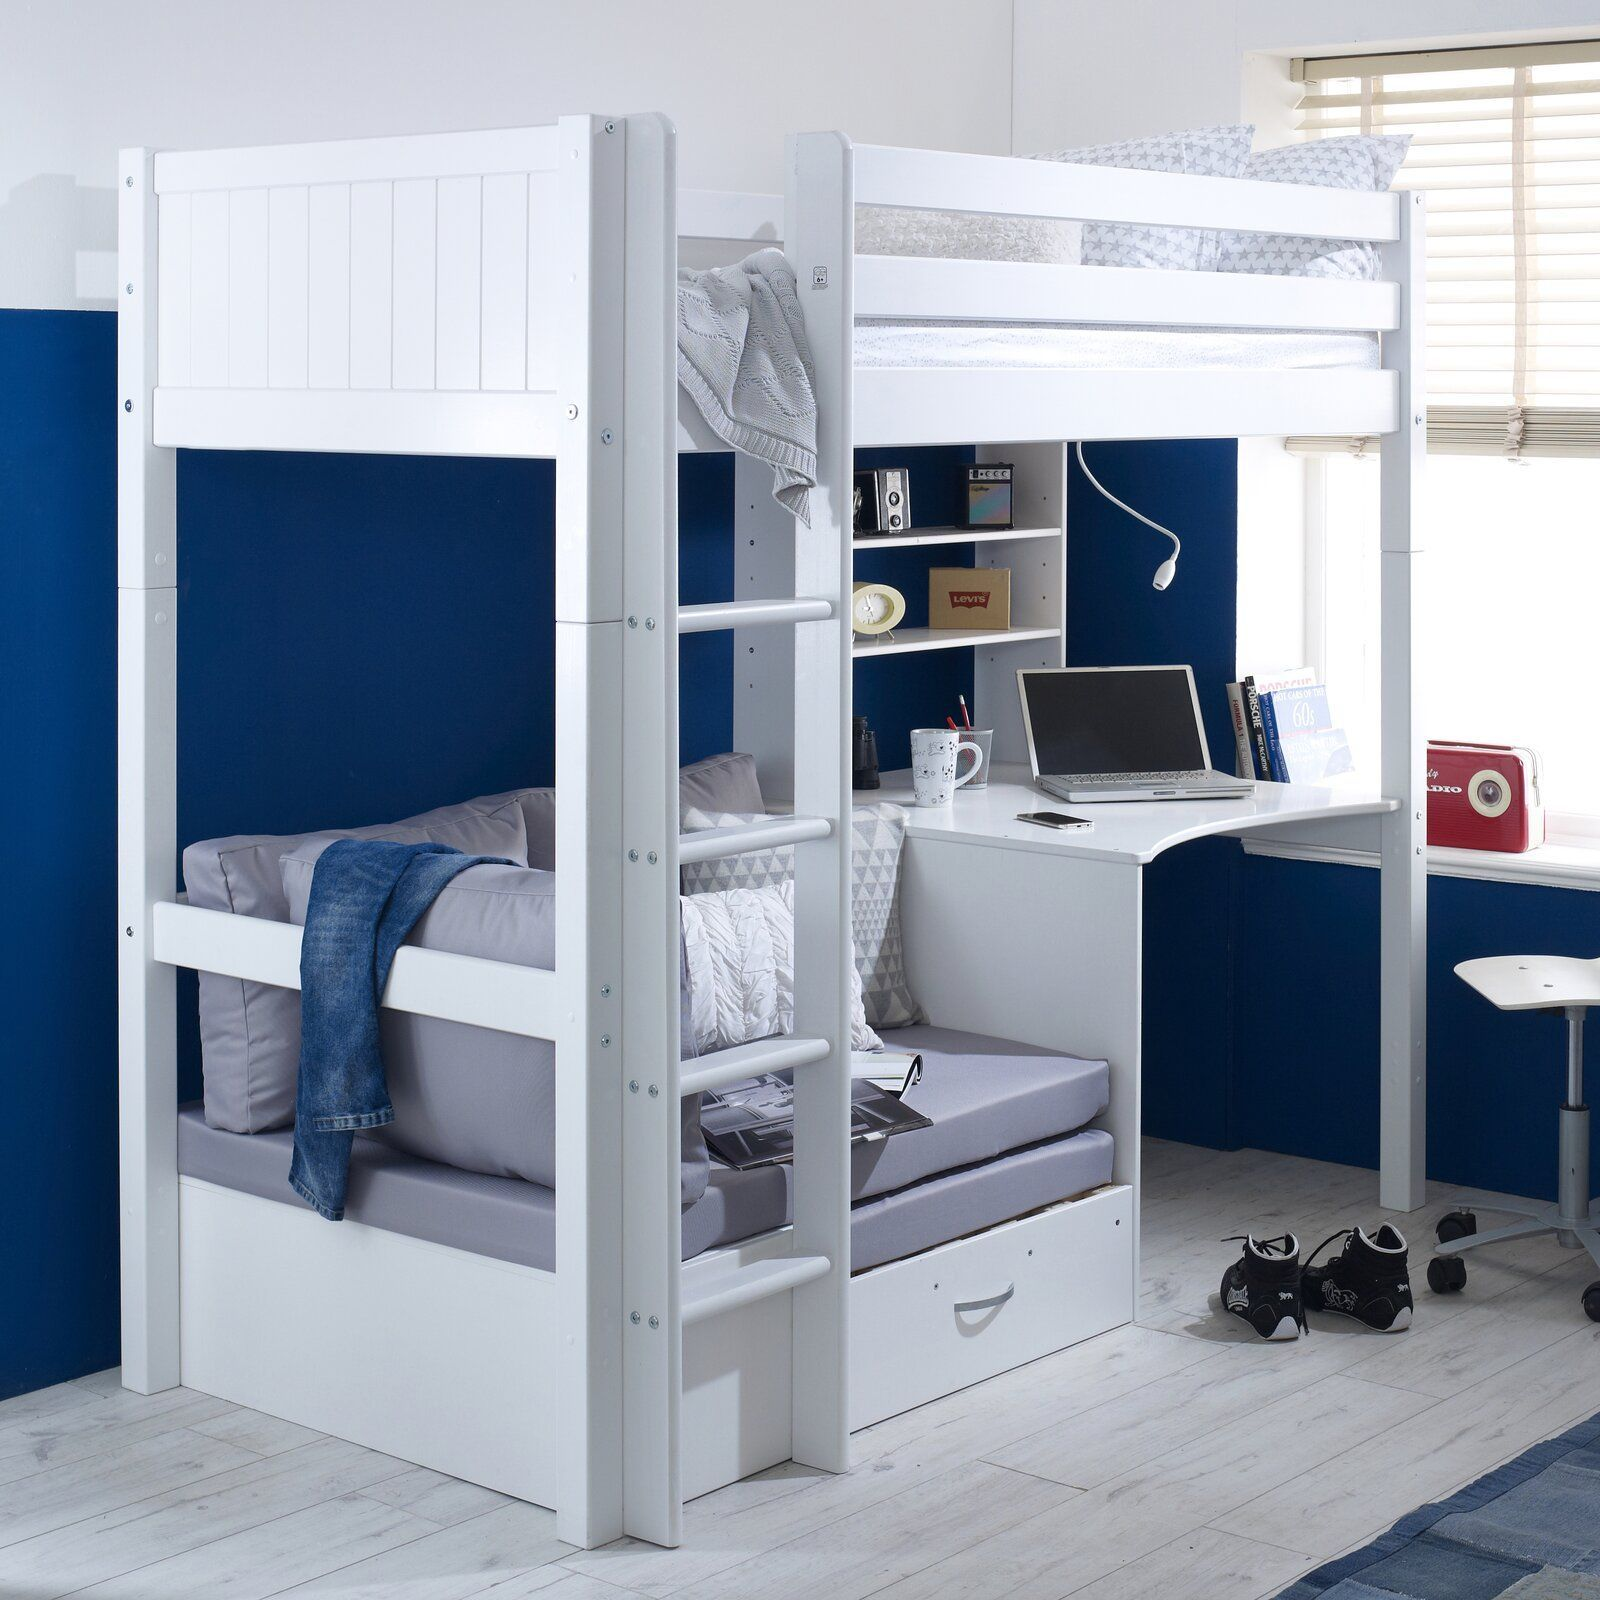 Stand European Single High Sleeper Bett Mit Ausziehbett High Sleeper Bed High Sleeper Bunk Bed With Desk